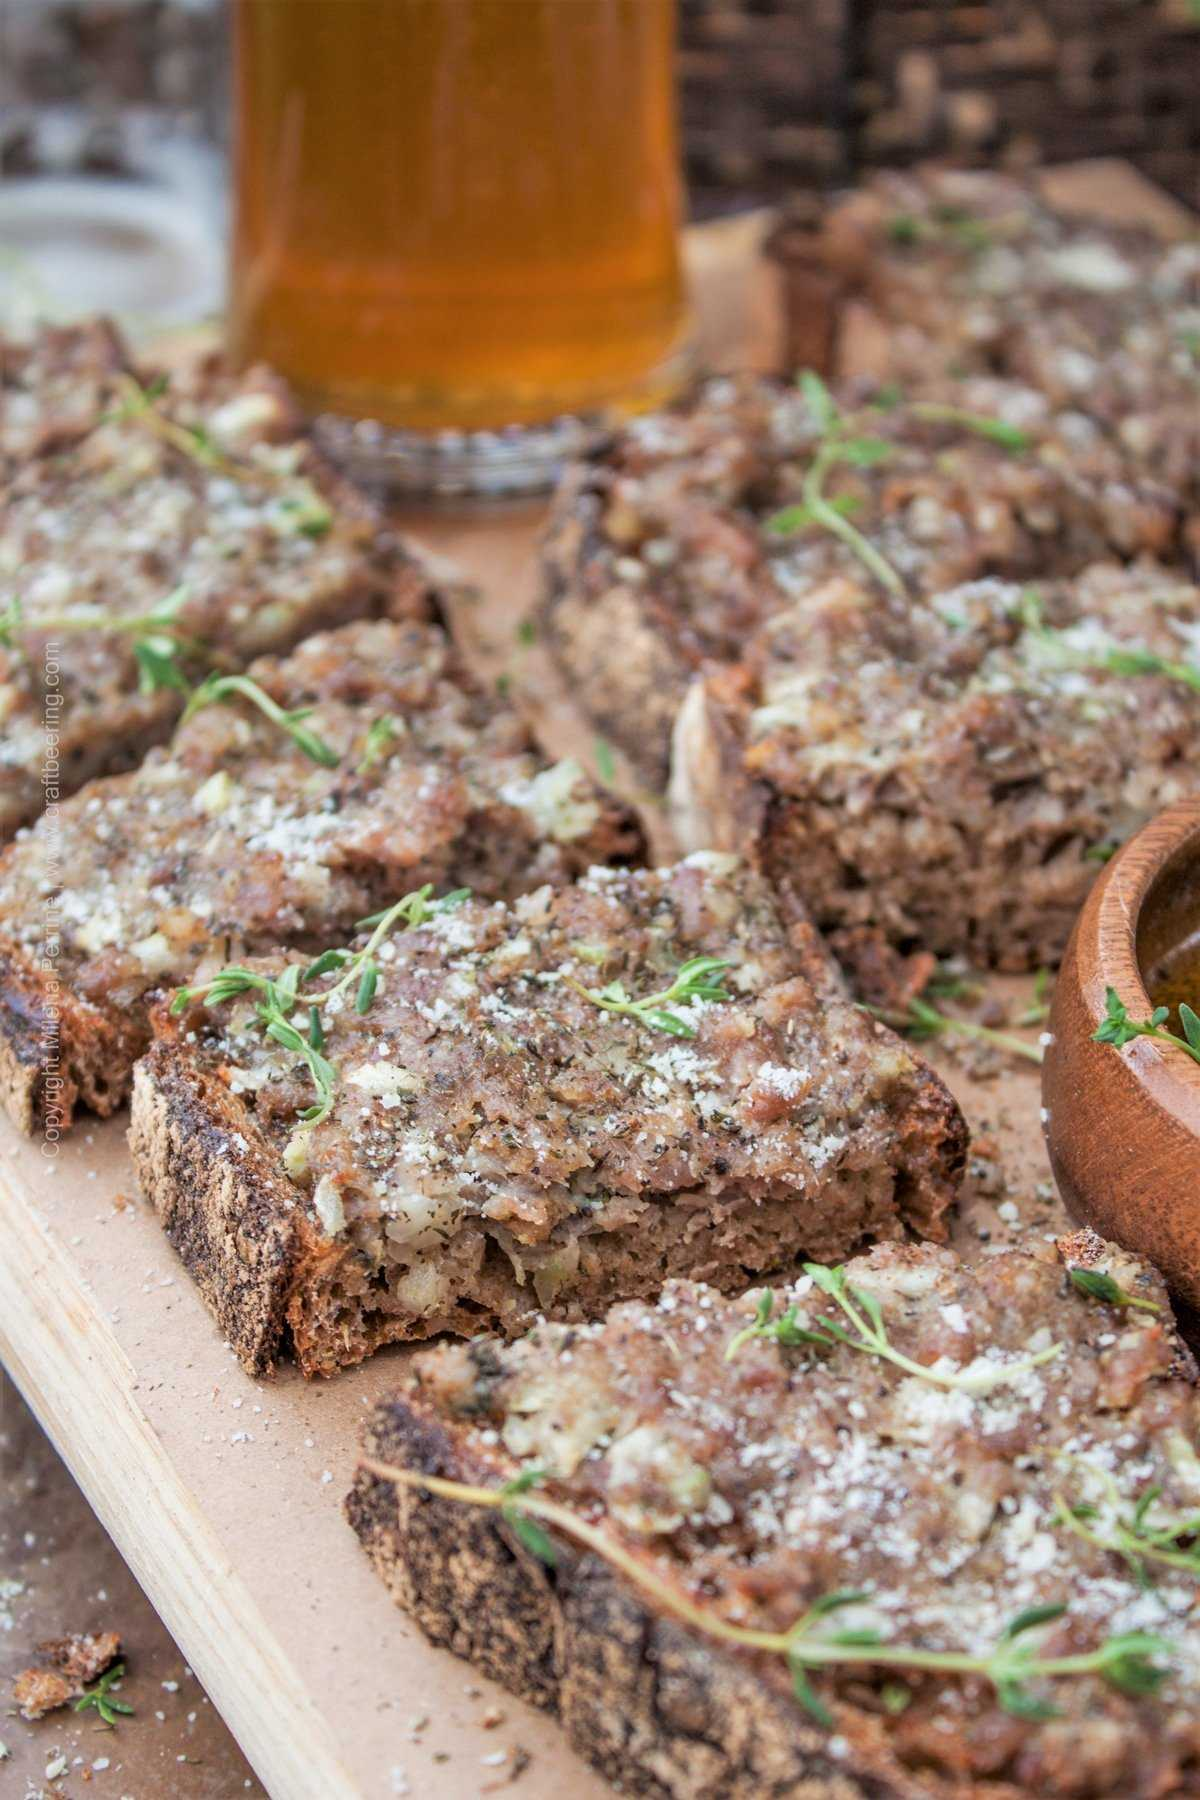 The Princessa sandwich - a Bulgarian favorite and a great partner to good beer. Open faced sandwich made with rustic bread smothered with a tasty ground pork, summer savory, cumin and onion mixture. You need this!